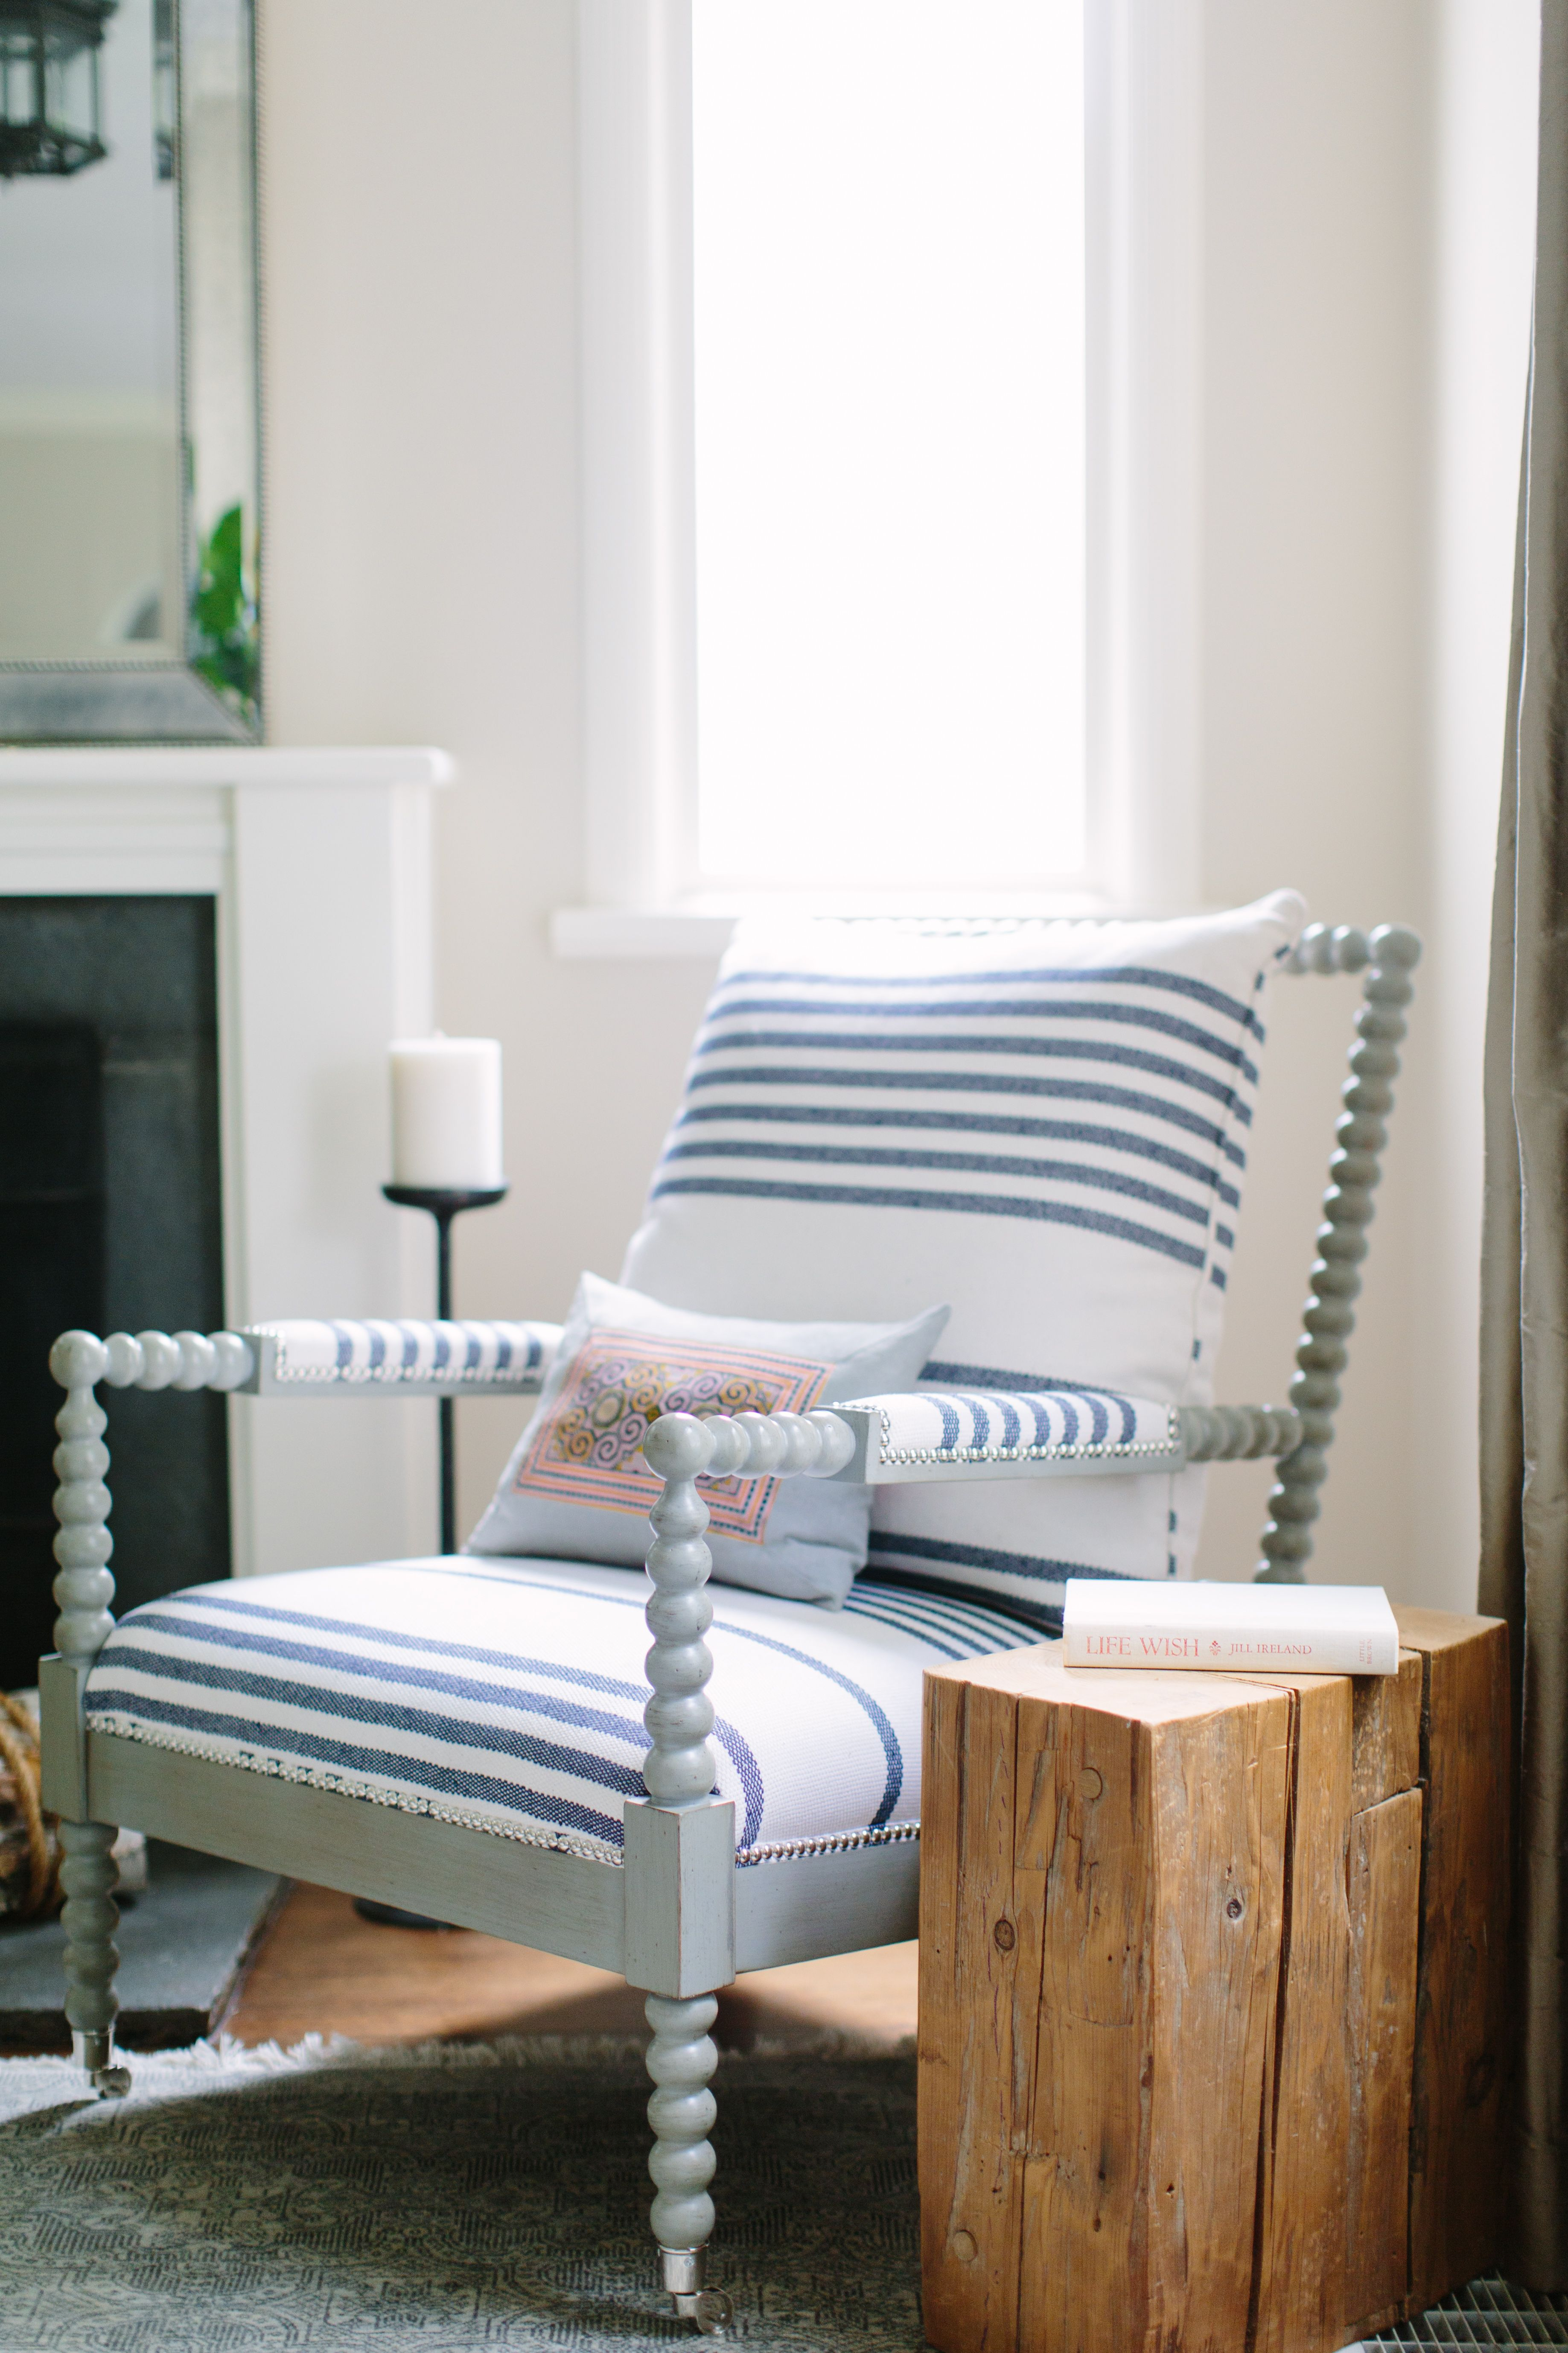 Willow Residence Fabulous Furniture Pinterest Furniture House And Home